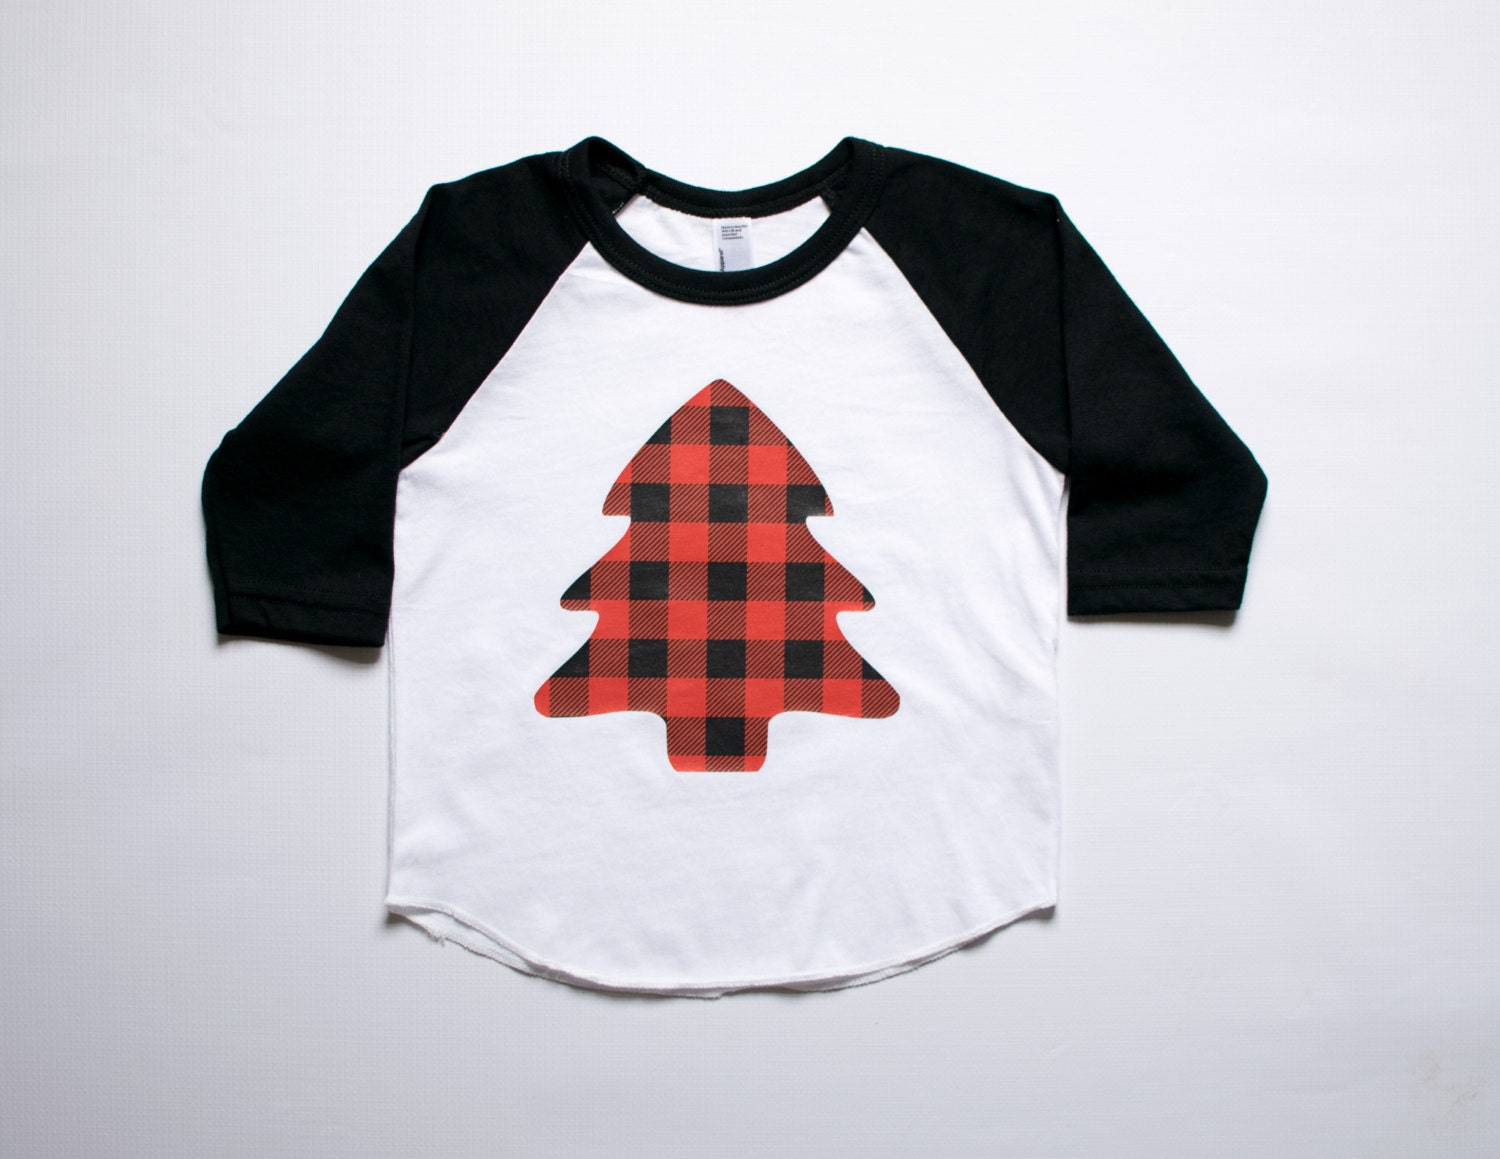 Find great deals on eBay for Baby Boy Christmas Clothes in Baby Boys' Outfits and Sets (Newborn-5T). Shop with confidence.